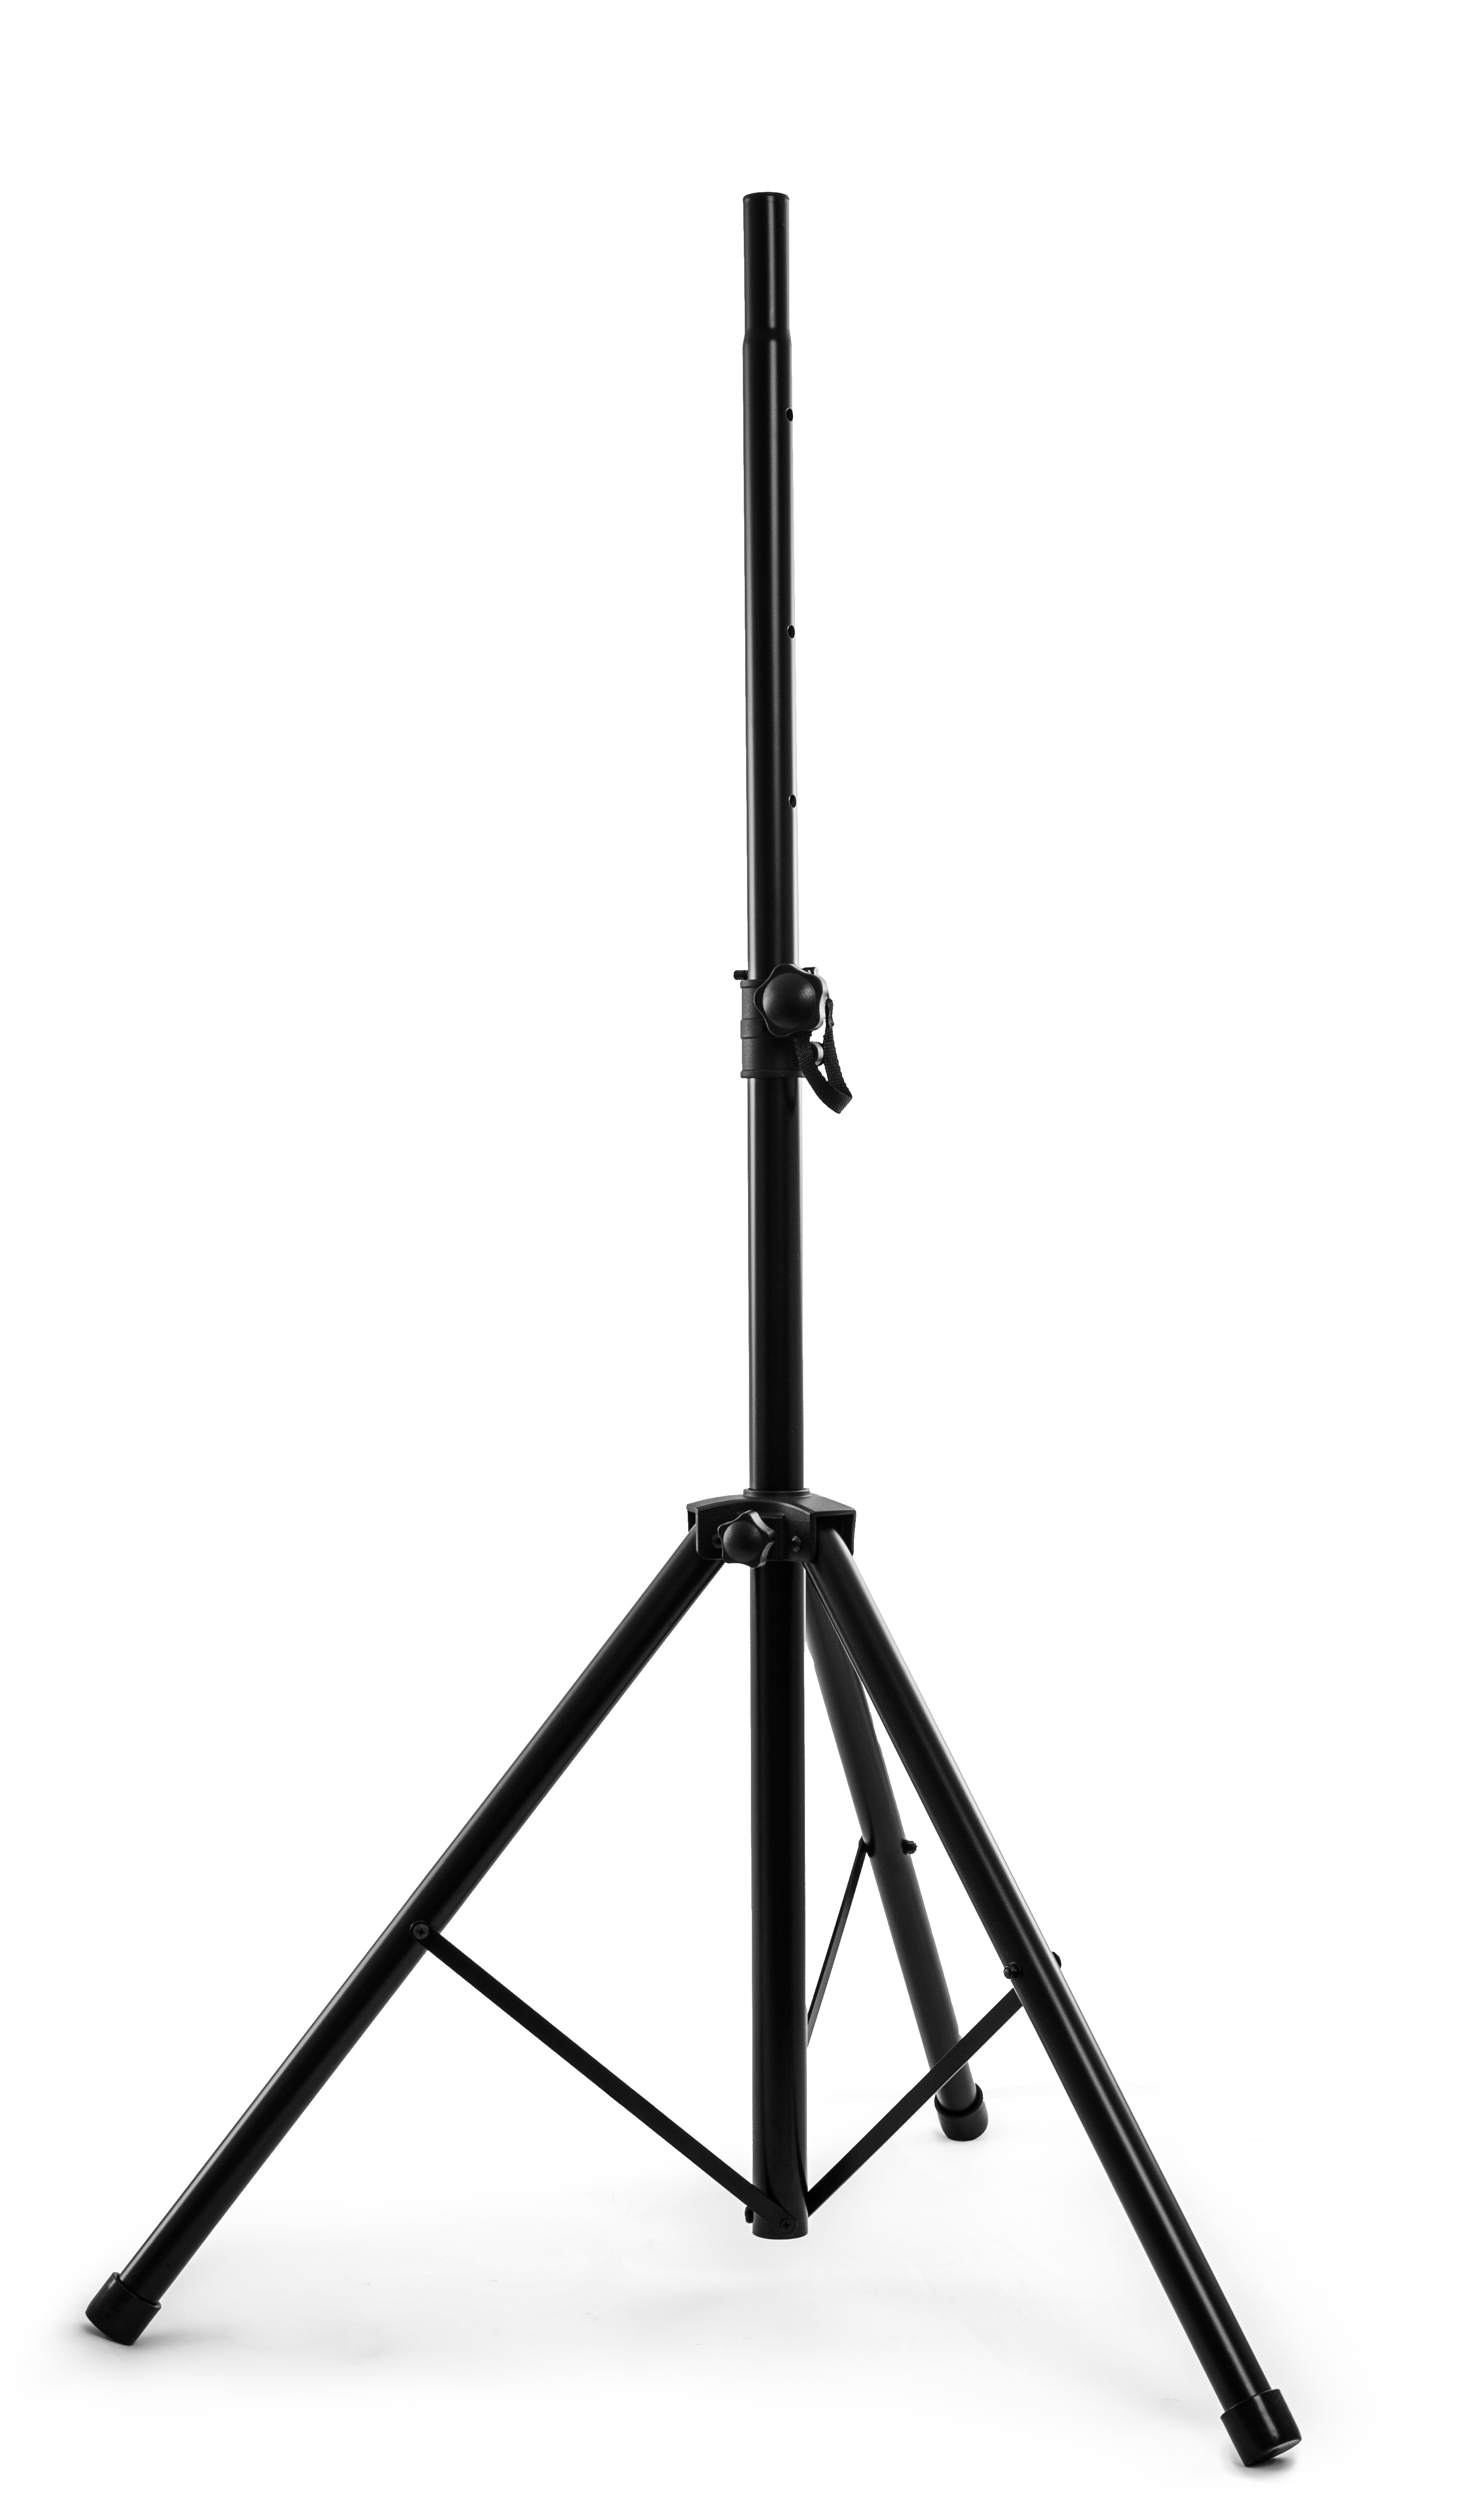 Nomad NSS-8033 Speaker Stand